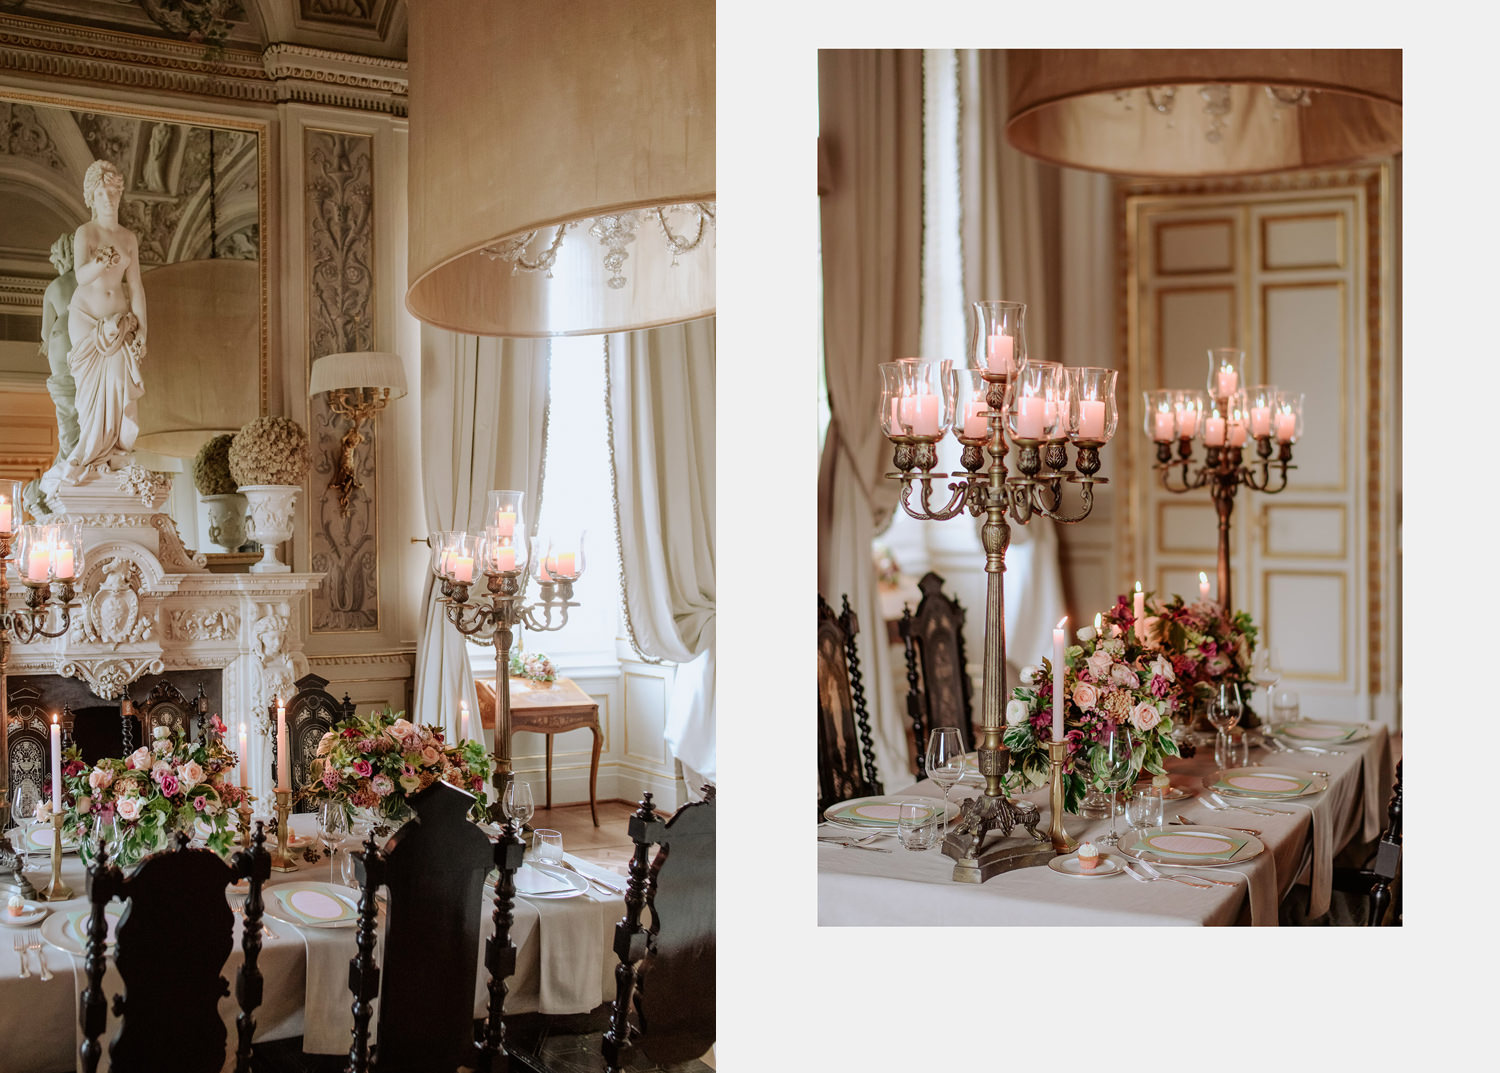 florence-elegant-wedding-photography-Villa-Cora-table-setup-deco